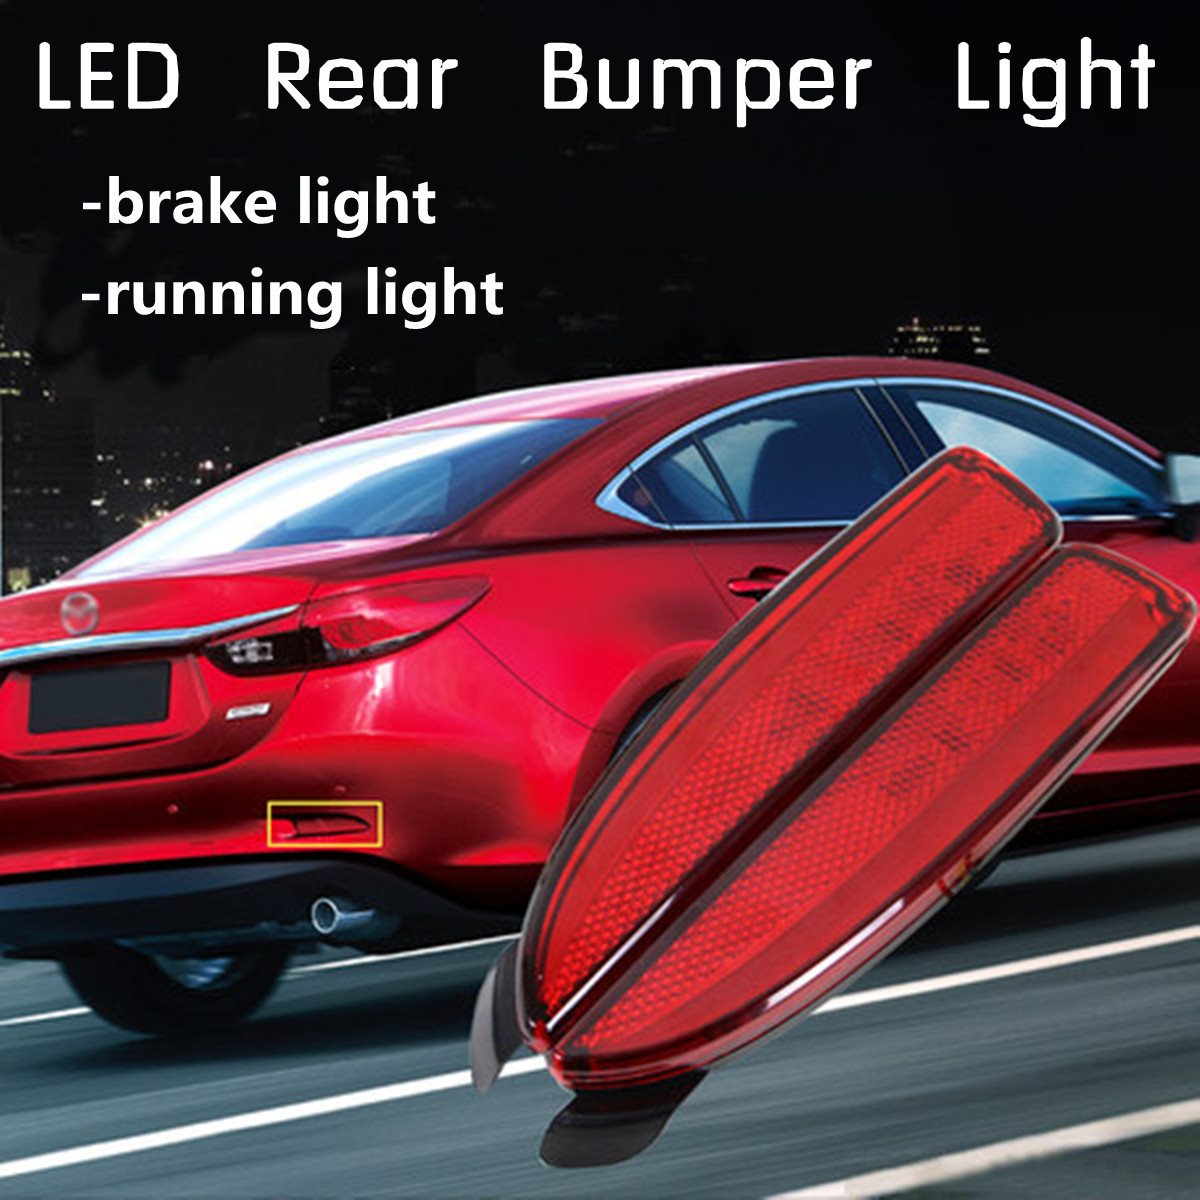 2Pcs <font><b>LED</b></font> Rear Bumper Reflector Tail Brake Stop Running <font><b>Light</b></font> For <font><b>Mazda</b></font> <font><b>6</b></font> ATENZA 2014-2016 image